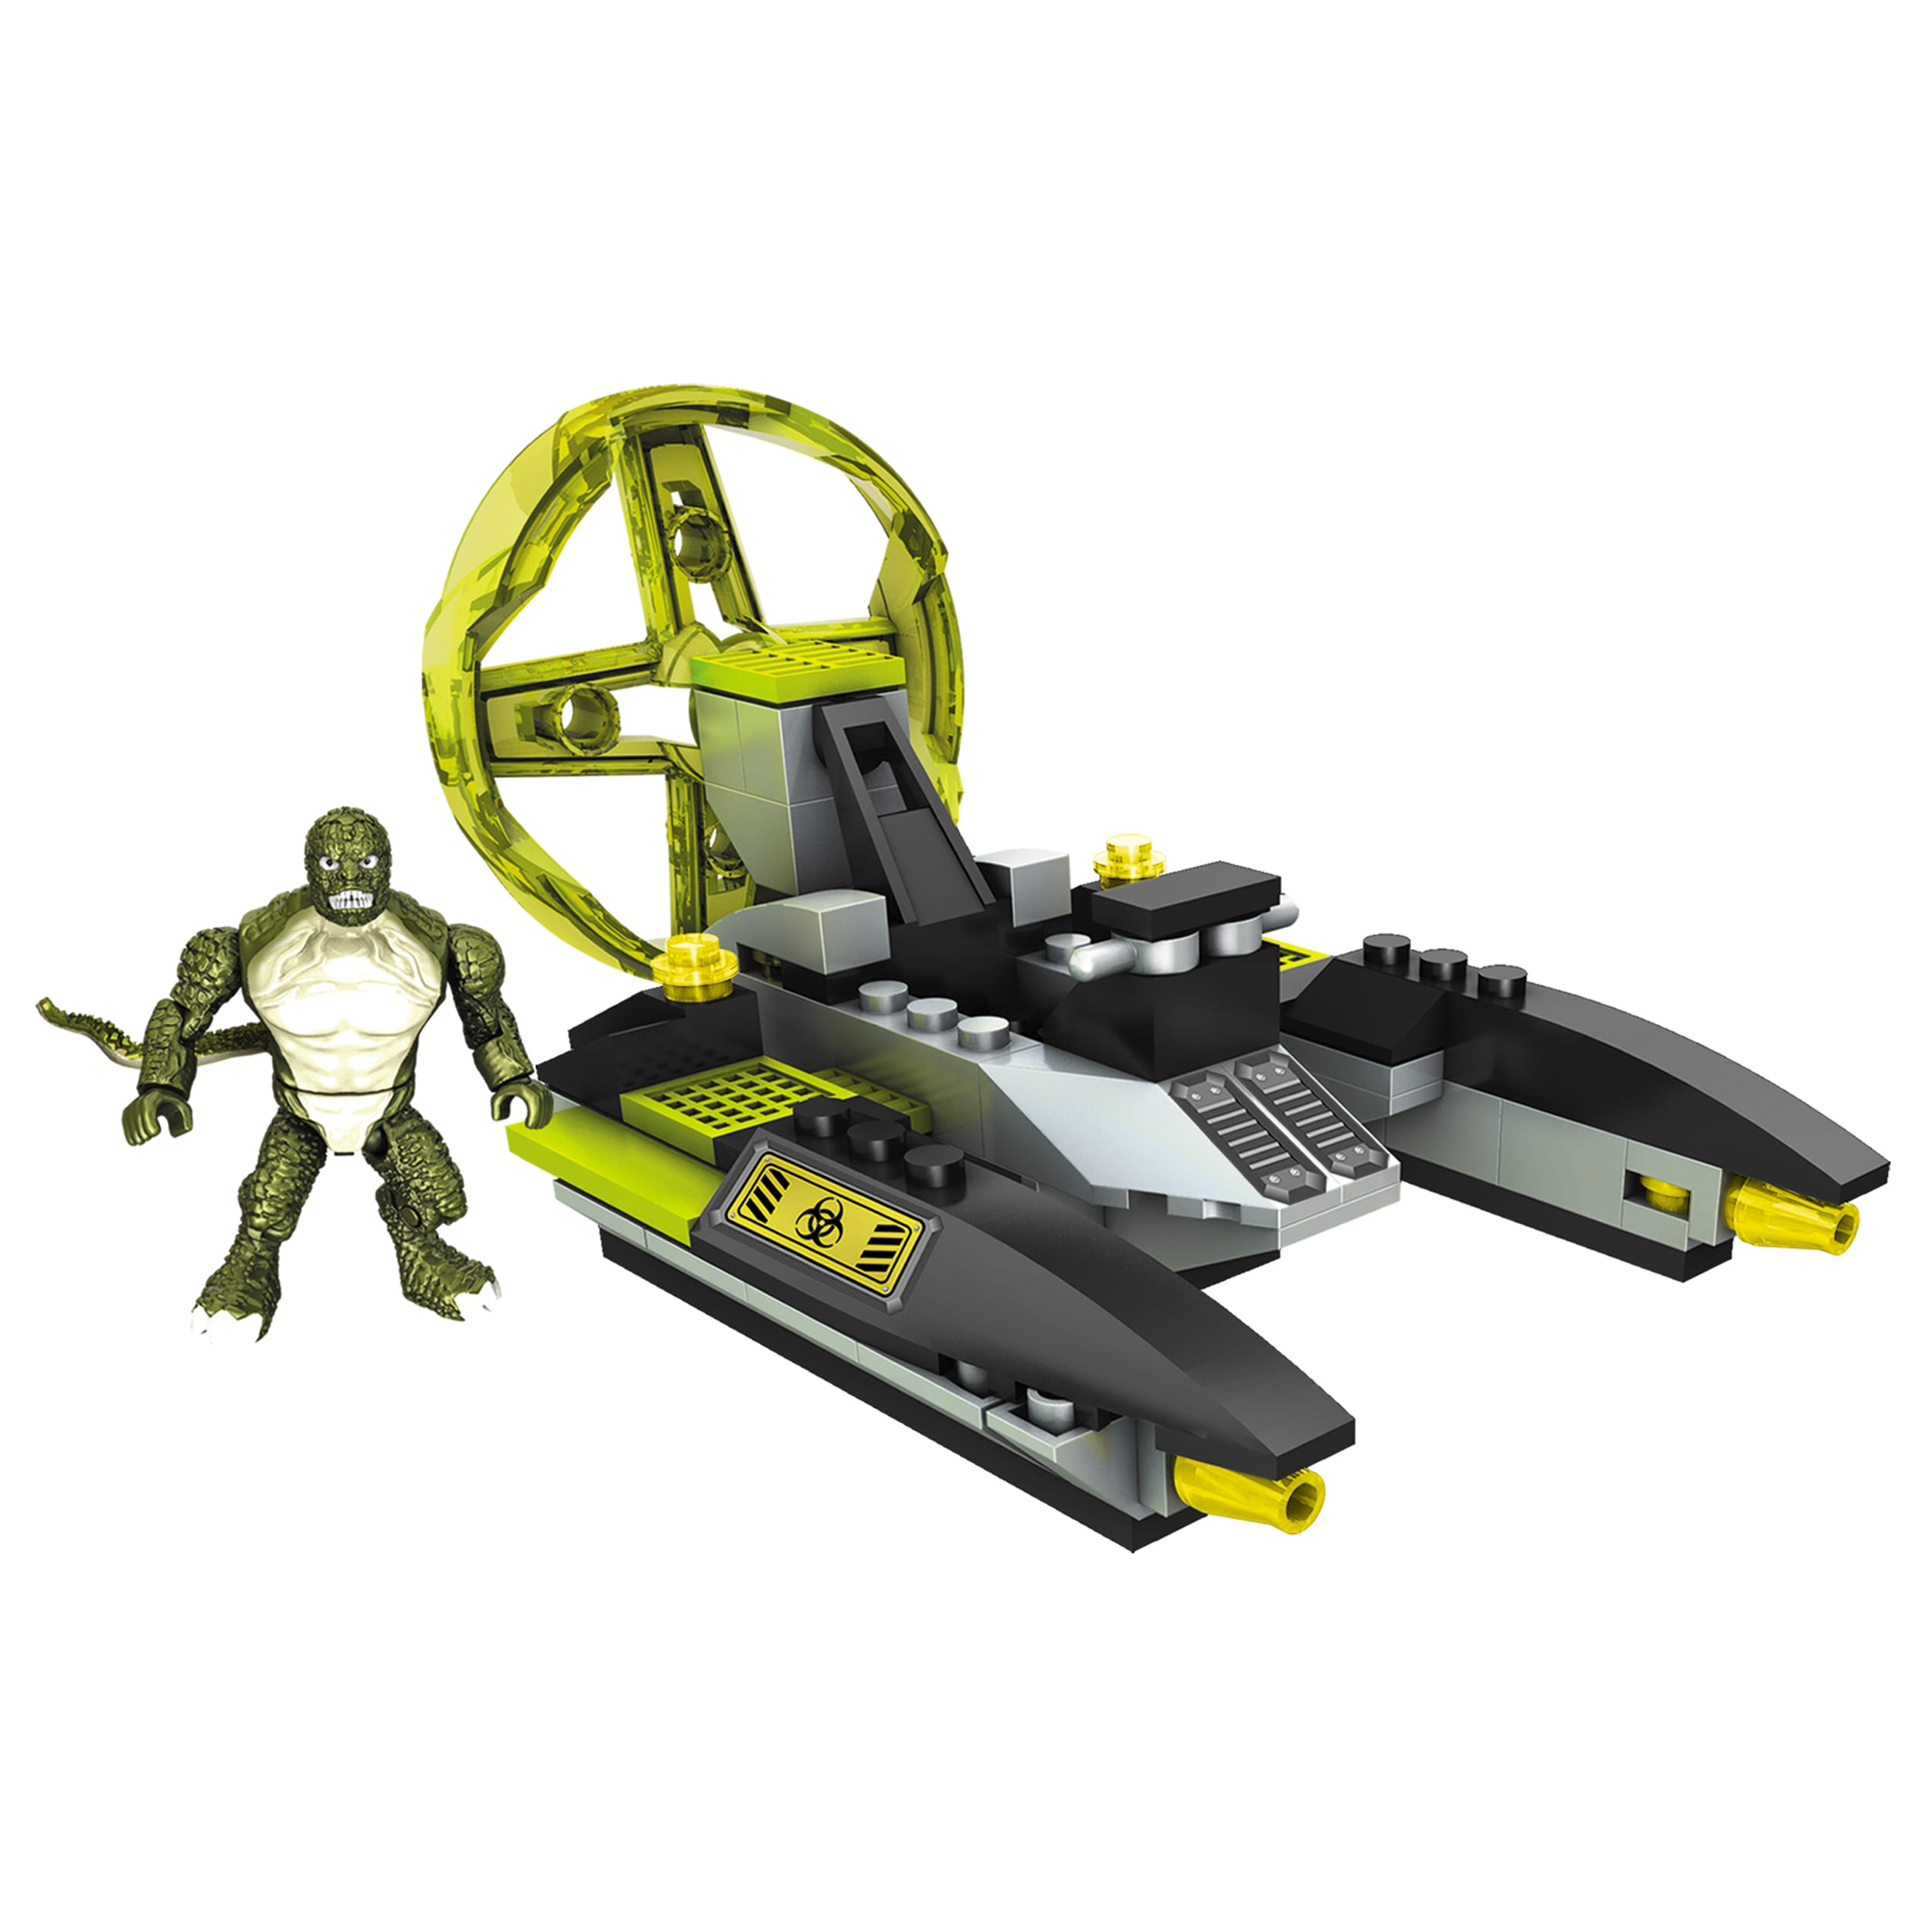 Mega Bloks Amazing Spider-Man Lizardman Sewer Speeder Playset